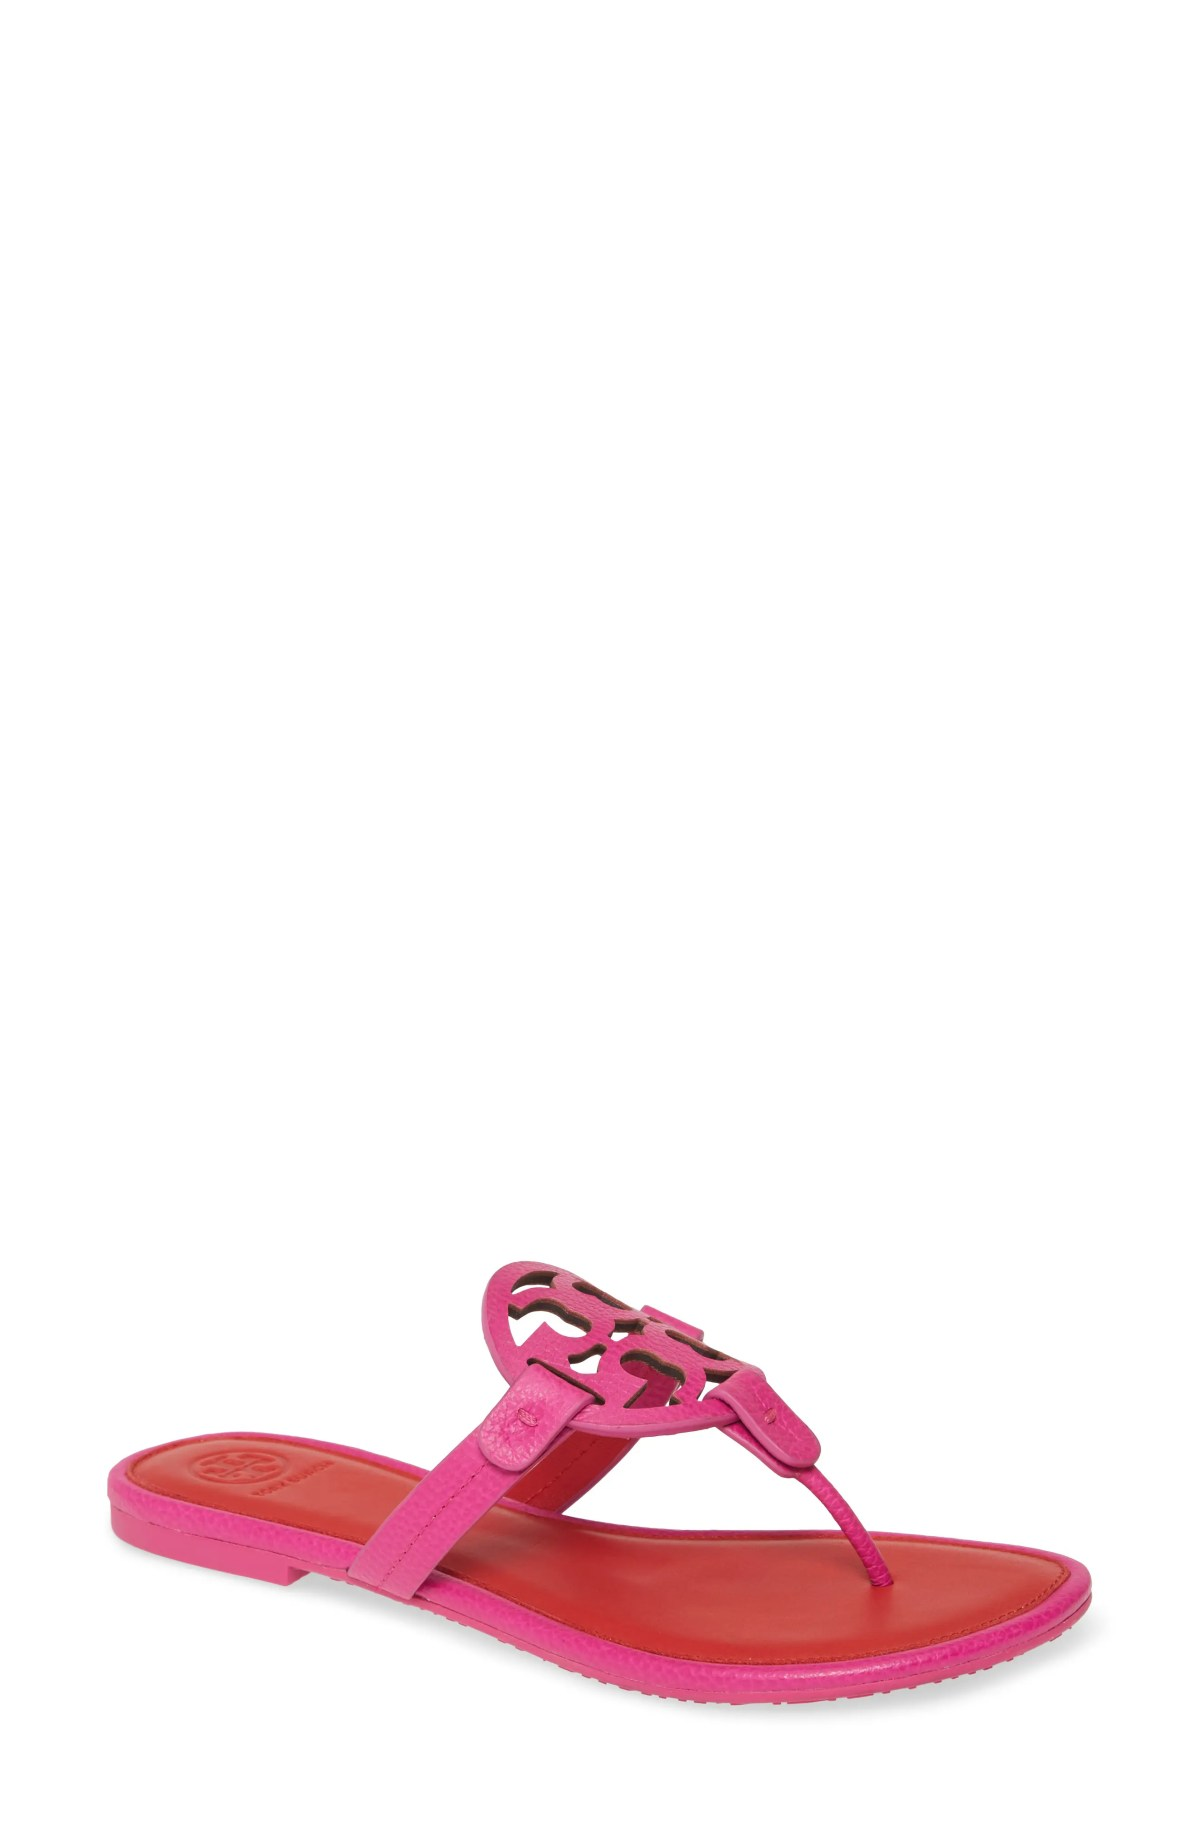 TORY BURCH Miller Flip Flop, Main, color, IMPERIAL PINK/ BRILLIANT RED